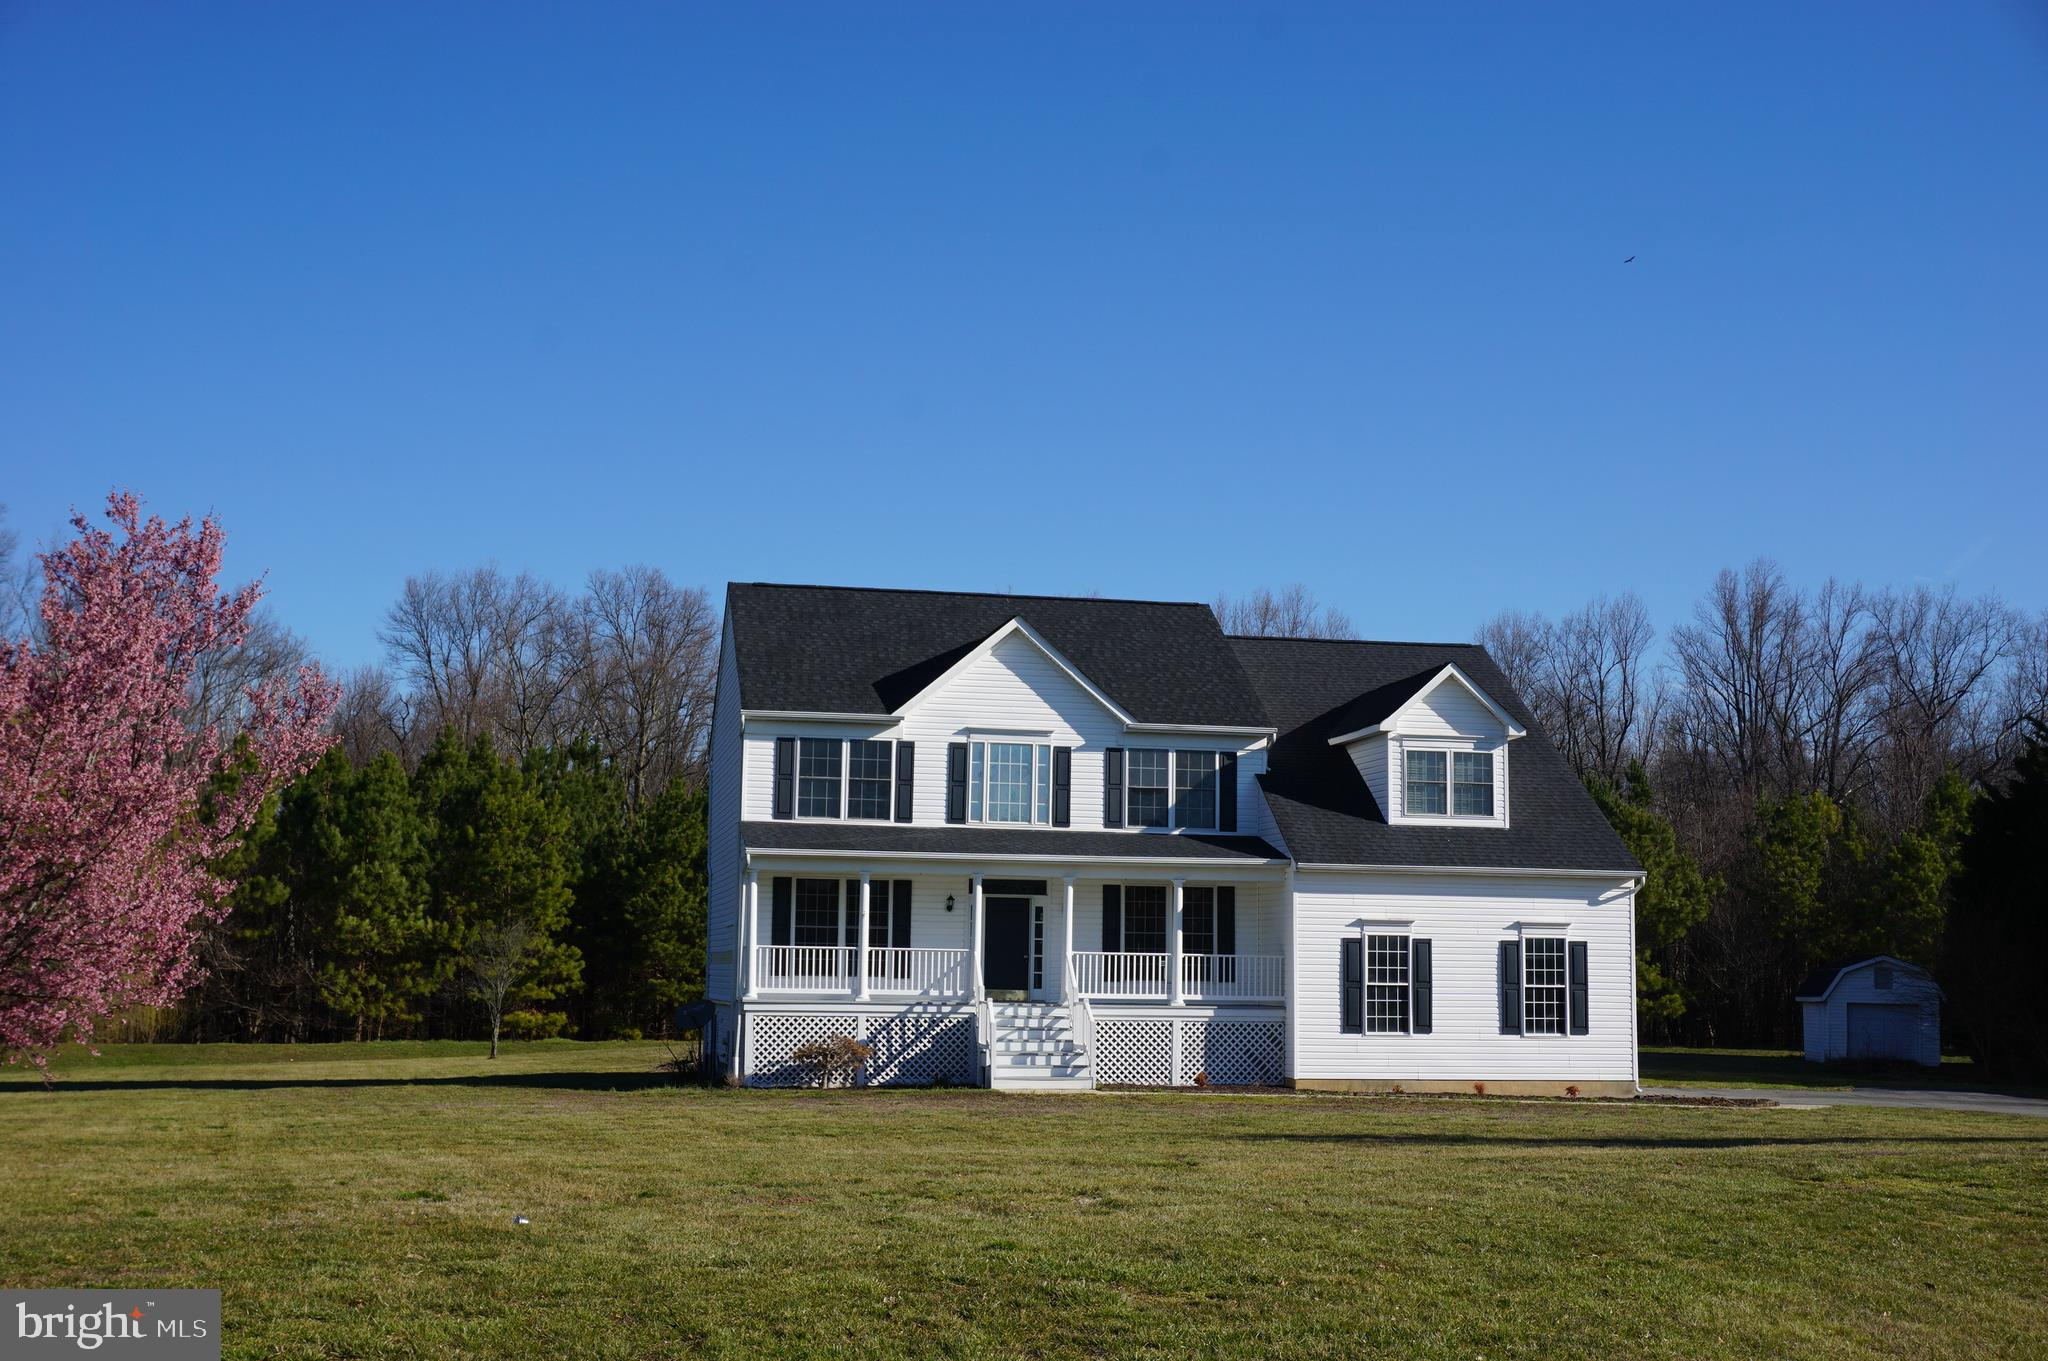 Welcome to your new home! This immaculate colonial is situated on over an acre of land just outside